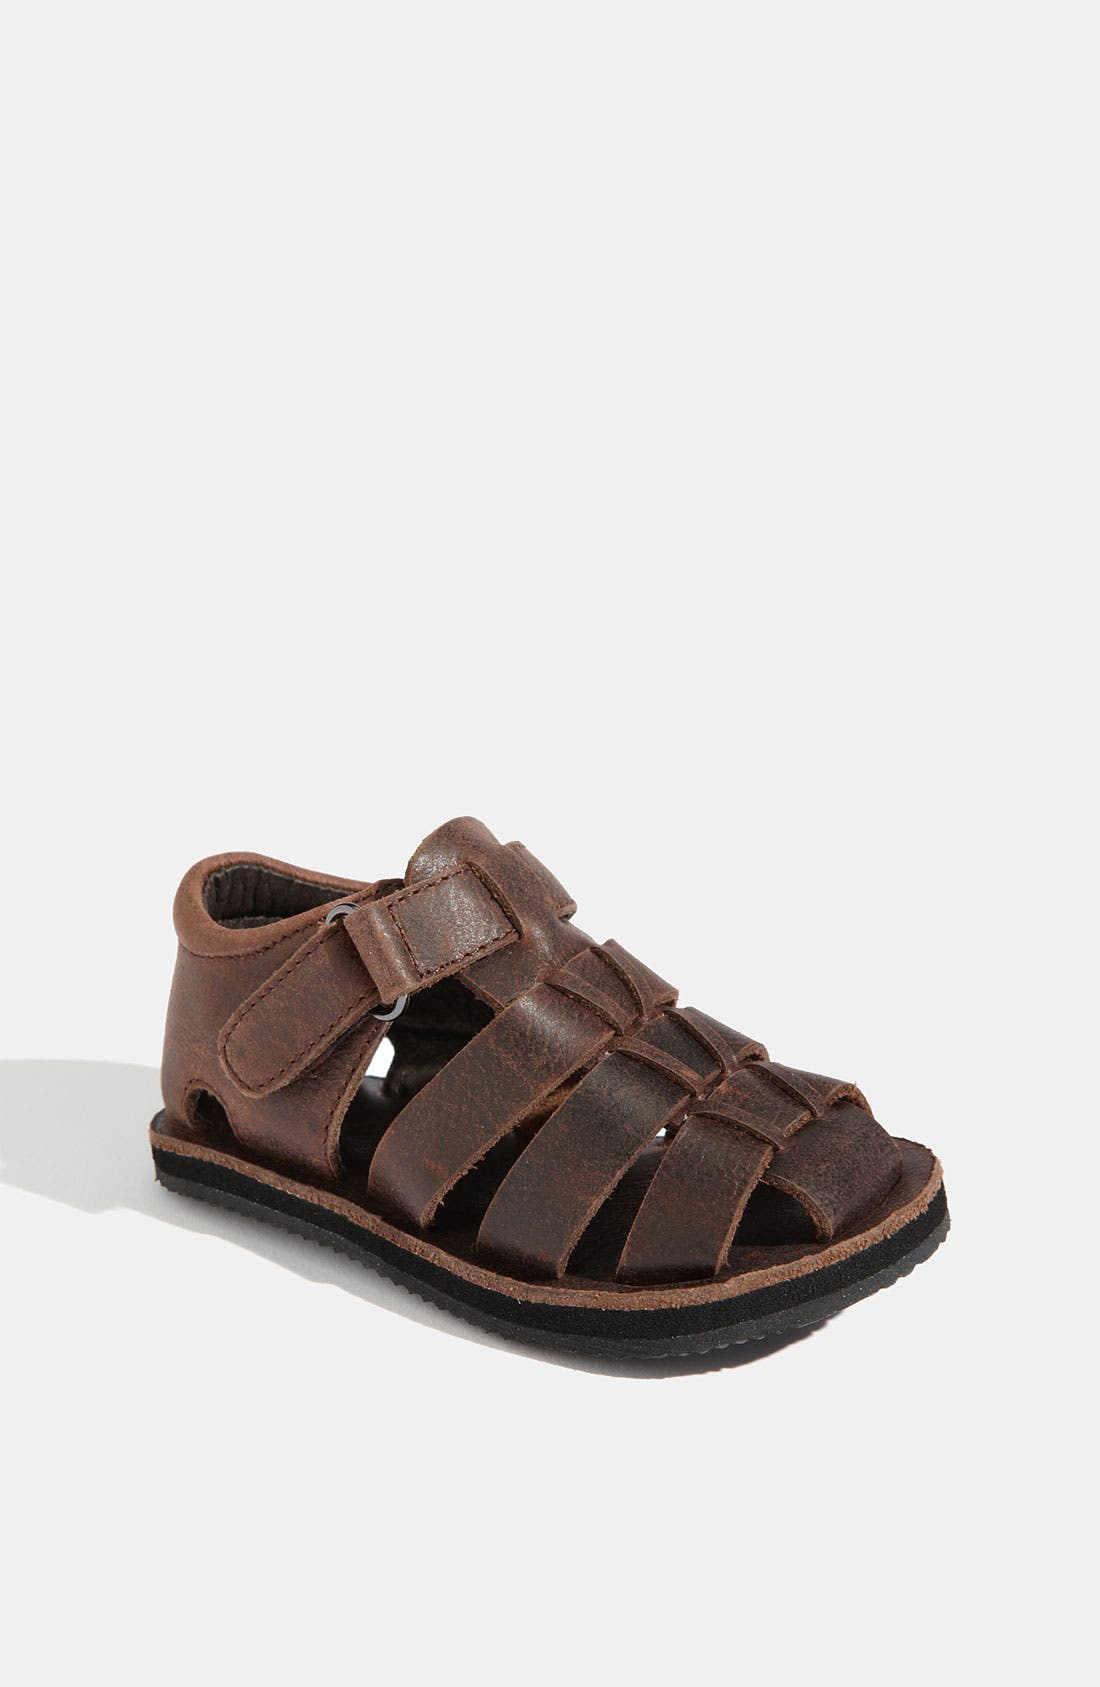 Alternate Image 1 Selected - Cole Haan 'Mini' Fisherman Sandal (Baby)